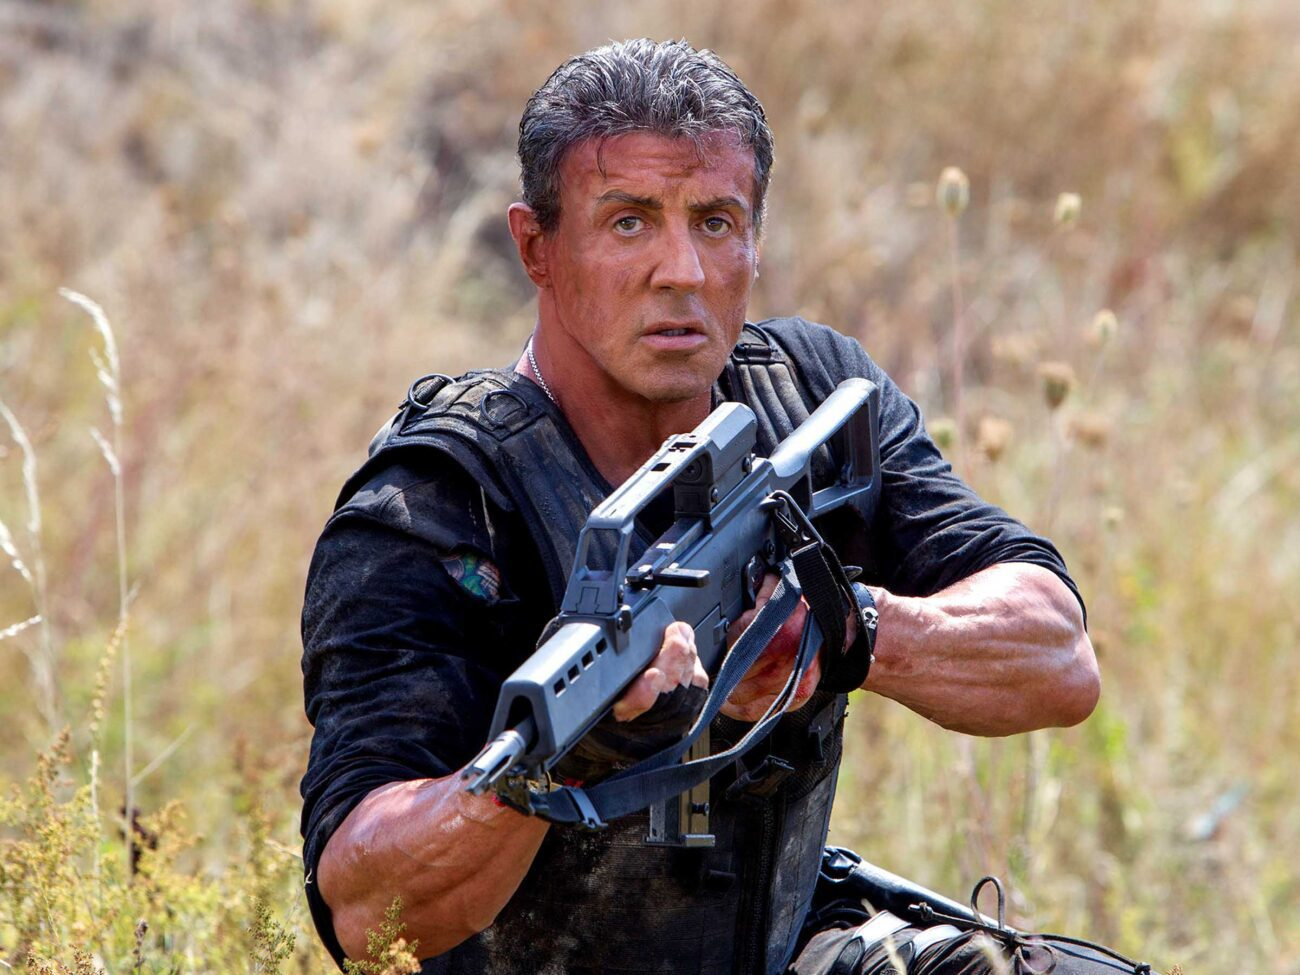 Some huge names have joined the cast for 'The Expendables 4'. Find out who and learn all the details about the upcoming action thriller here!